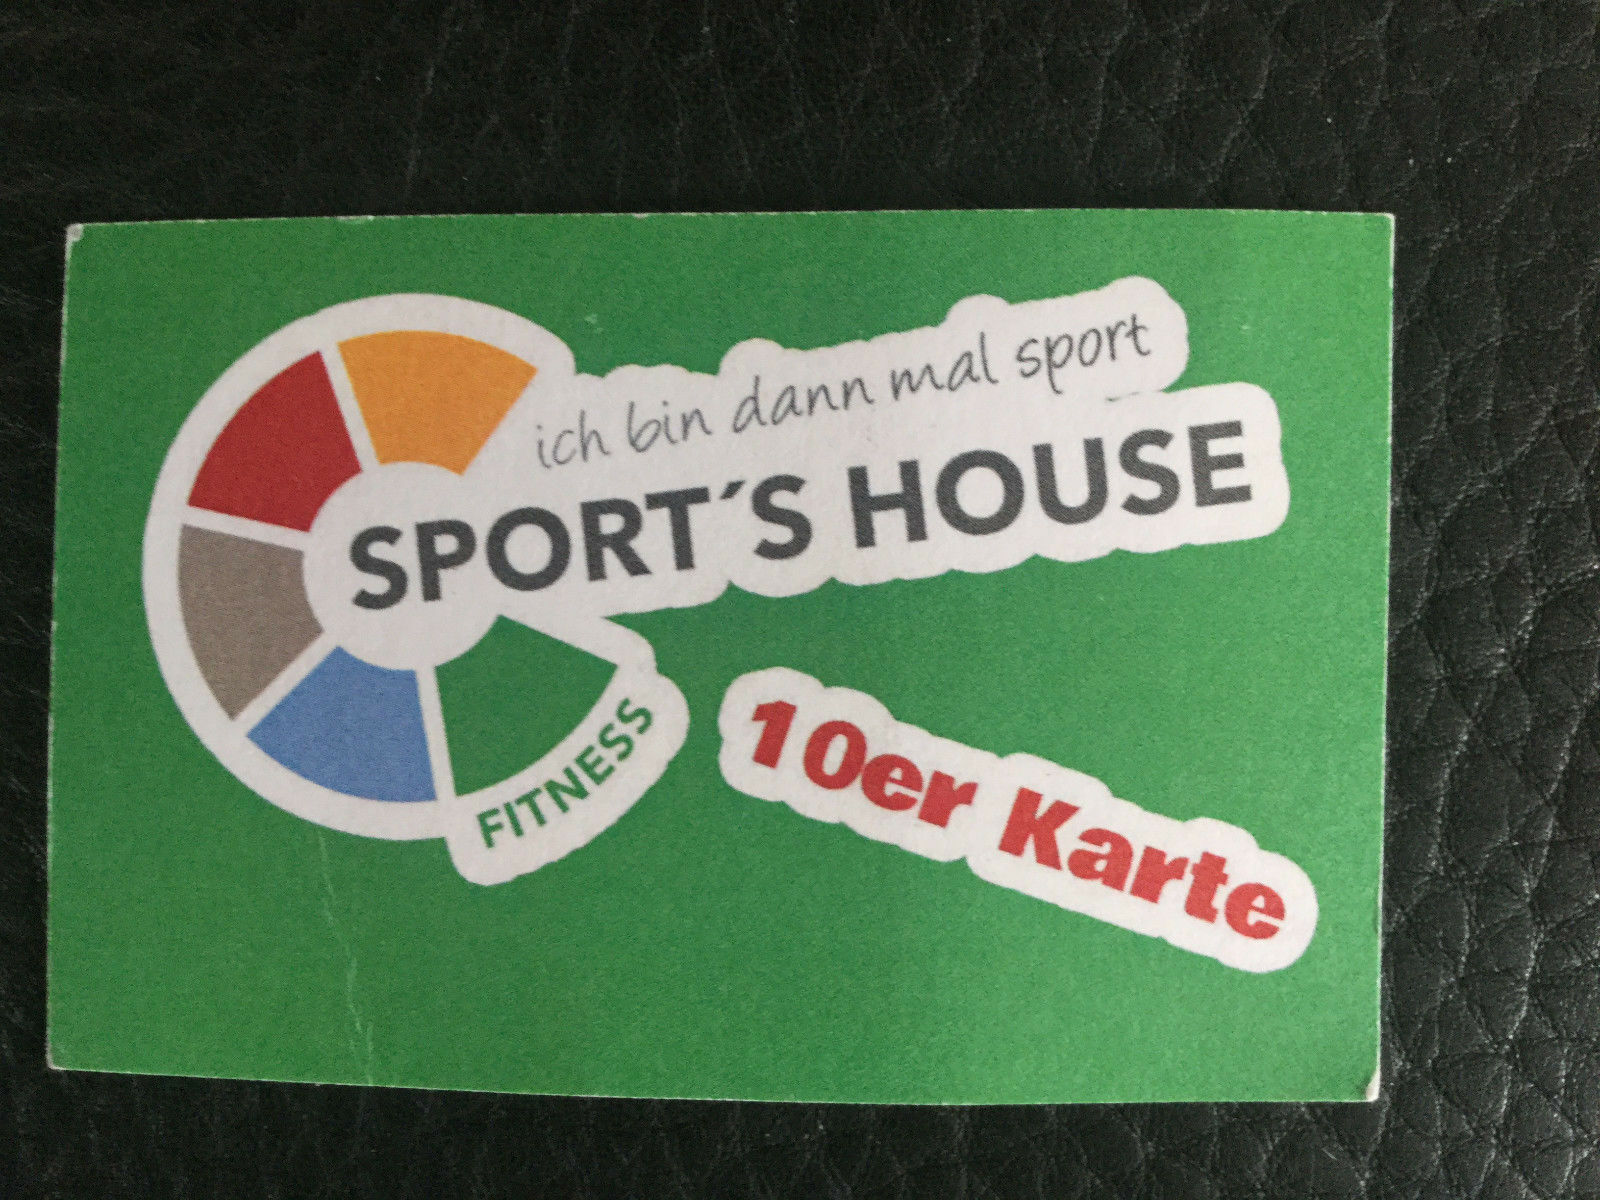 NEU 10 er Trainingskarte Fitness  Sport´s Sport´s Sport´s House Rödental  Studio 7e76b7